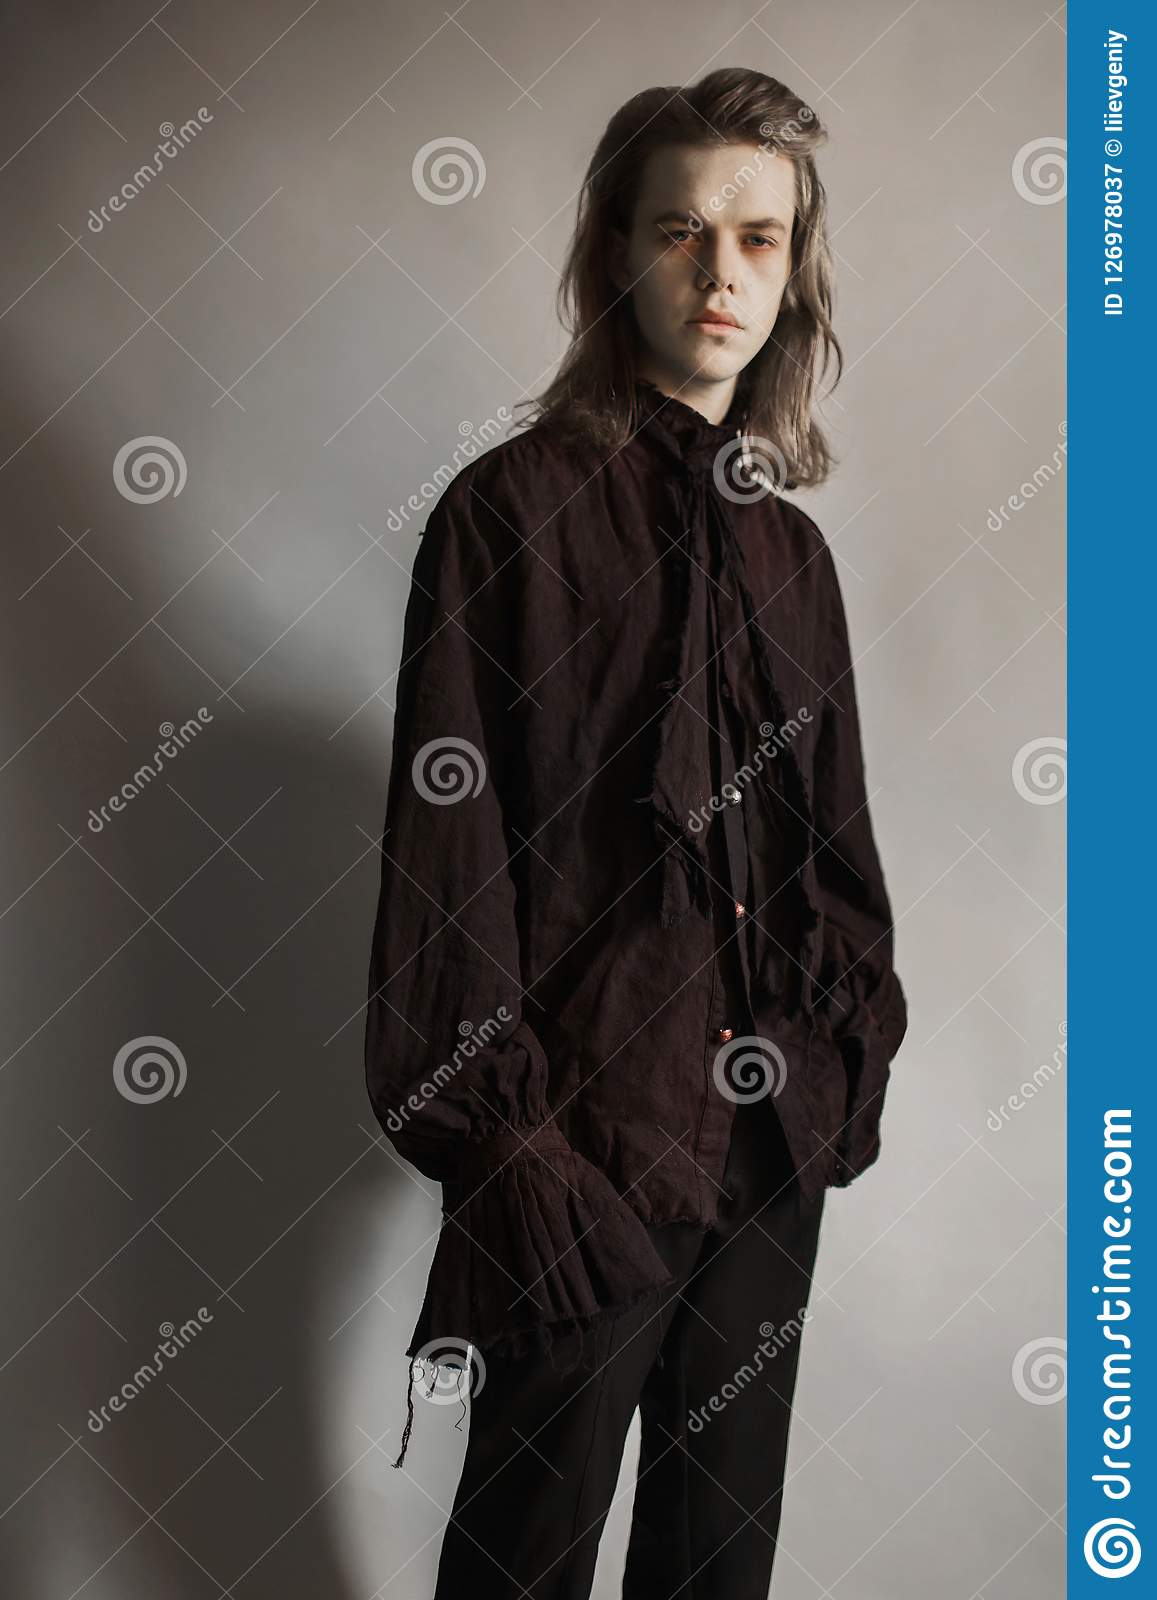 Gothic Halloween Clothes Mystical Knight Prince With Hairstyle Punk With Long Hair Vampire Man With Hairdo Mystical Outfit Fo Stock Image Image Of Gothic Fashion 126978037